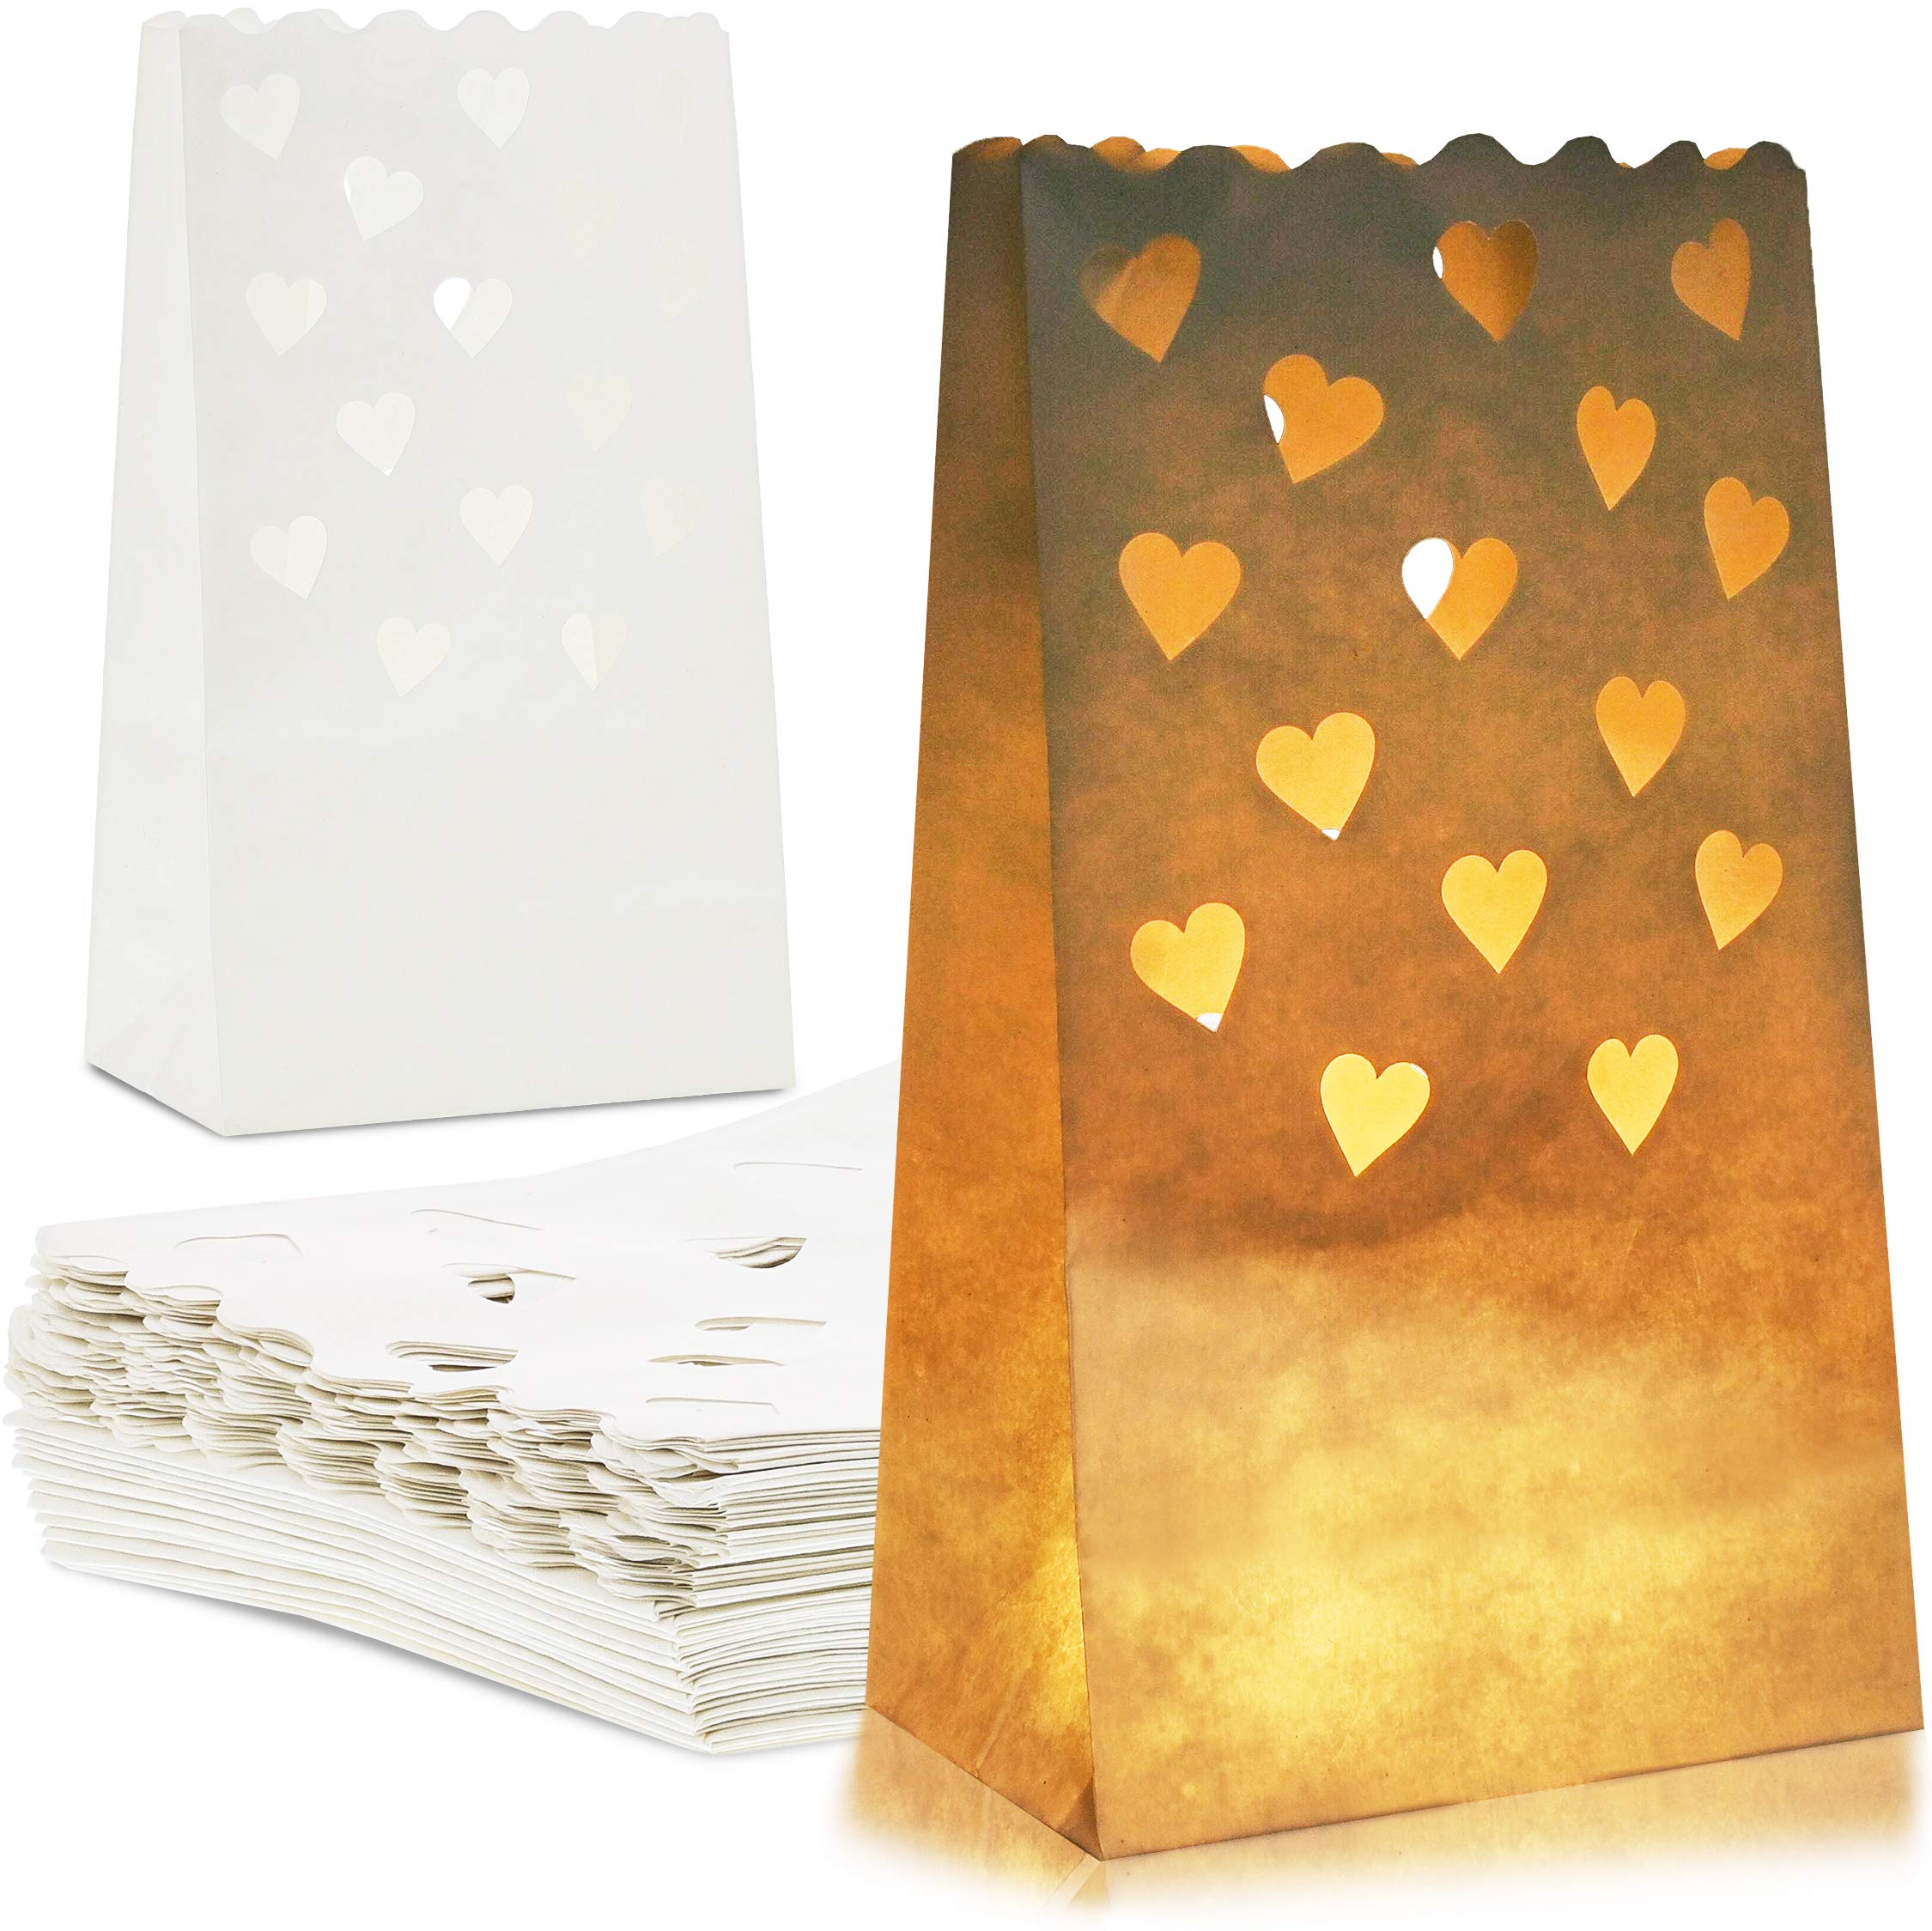 Juvale 48-Pack White Tea Light Candle Luminary Bags for Weddings, Party Decoration, 10 x 6 x 3.5 Inches by Juvale